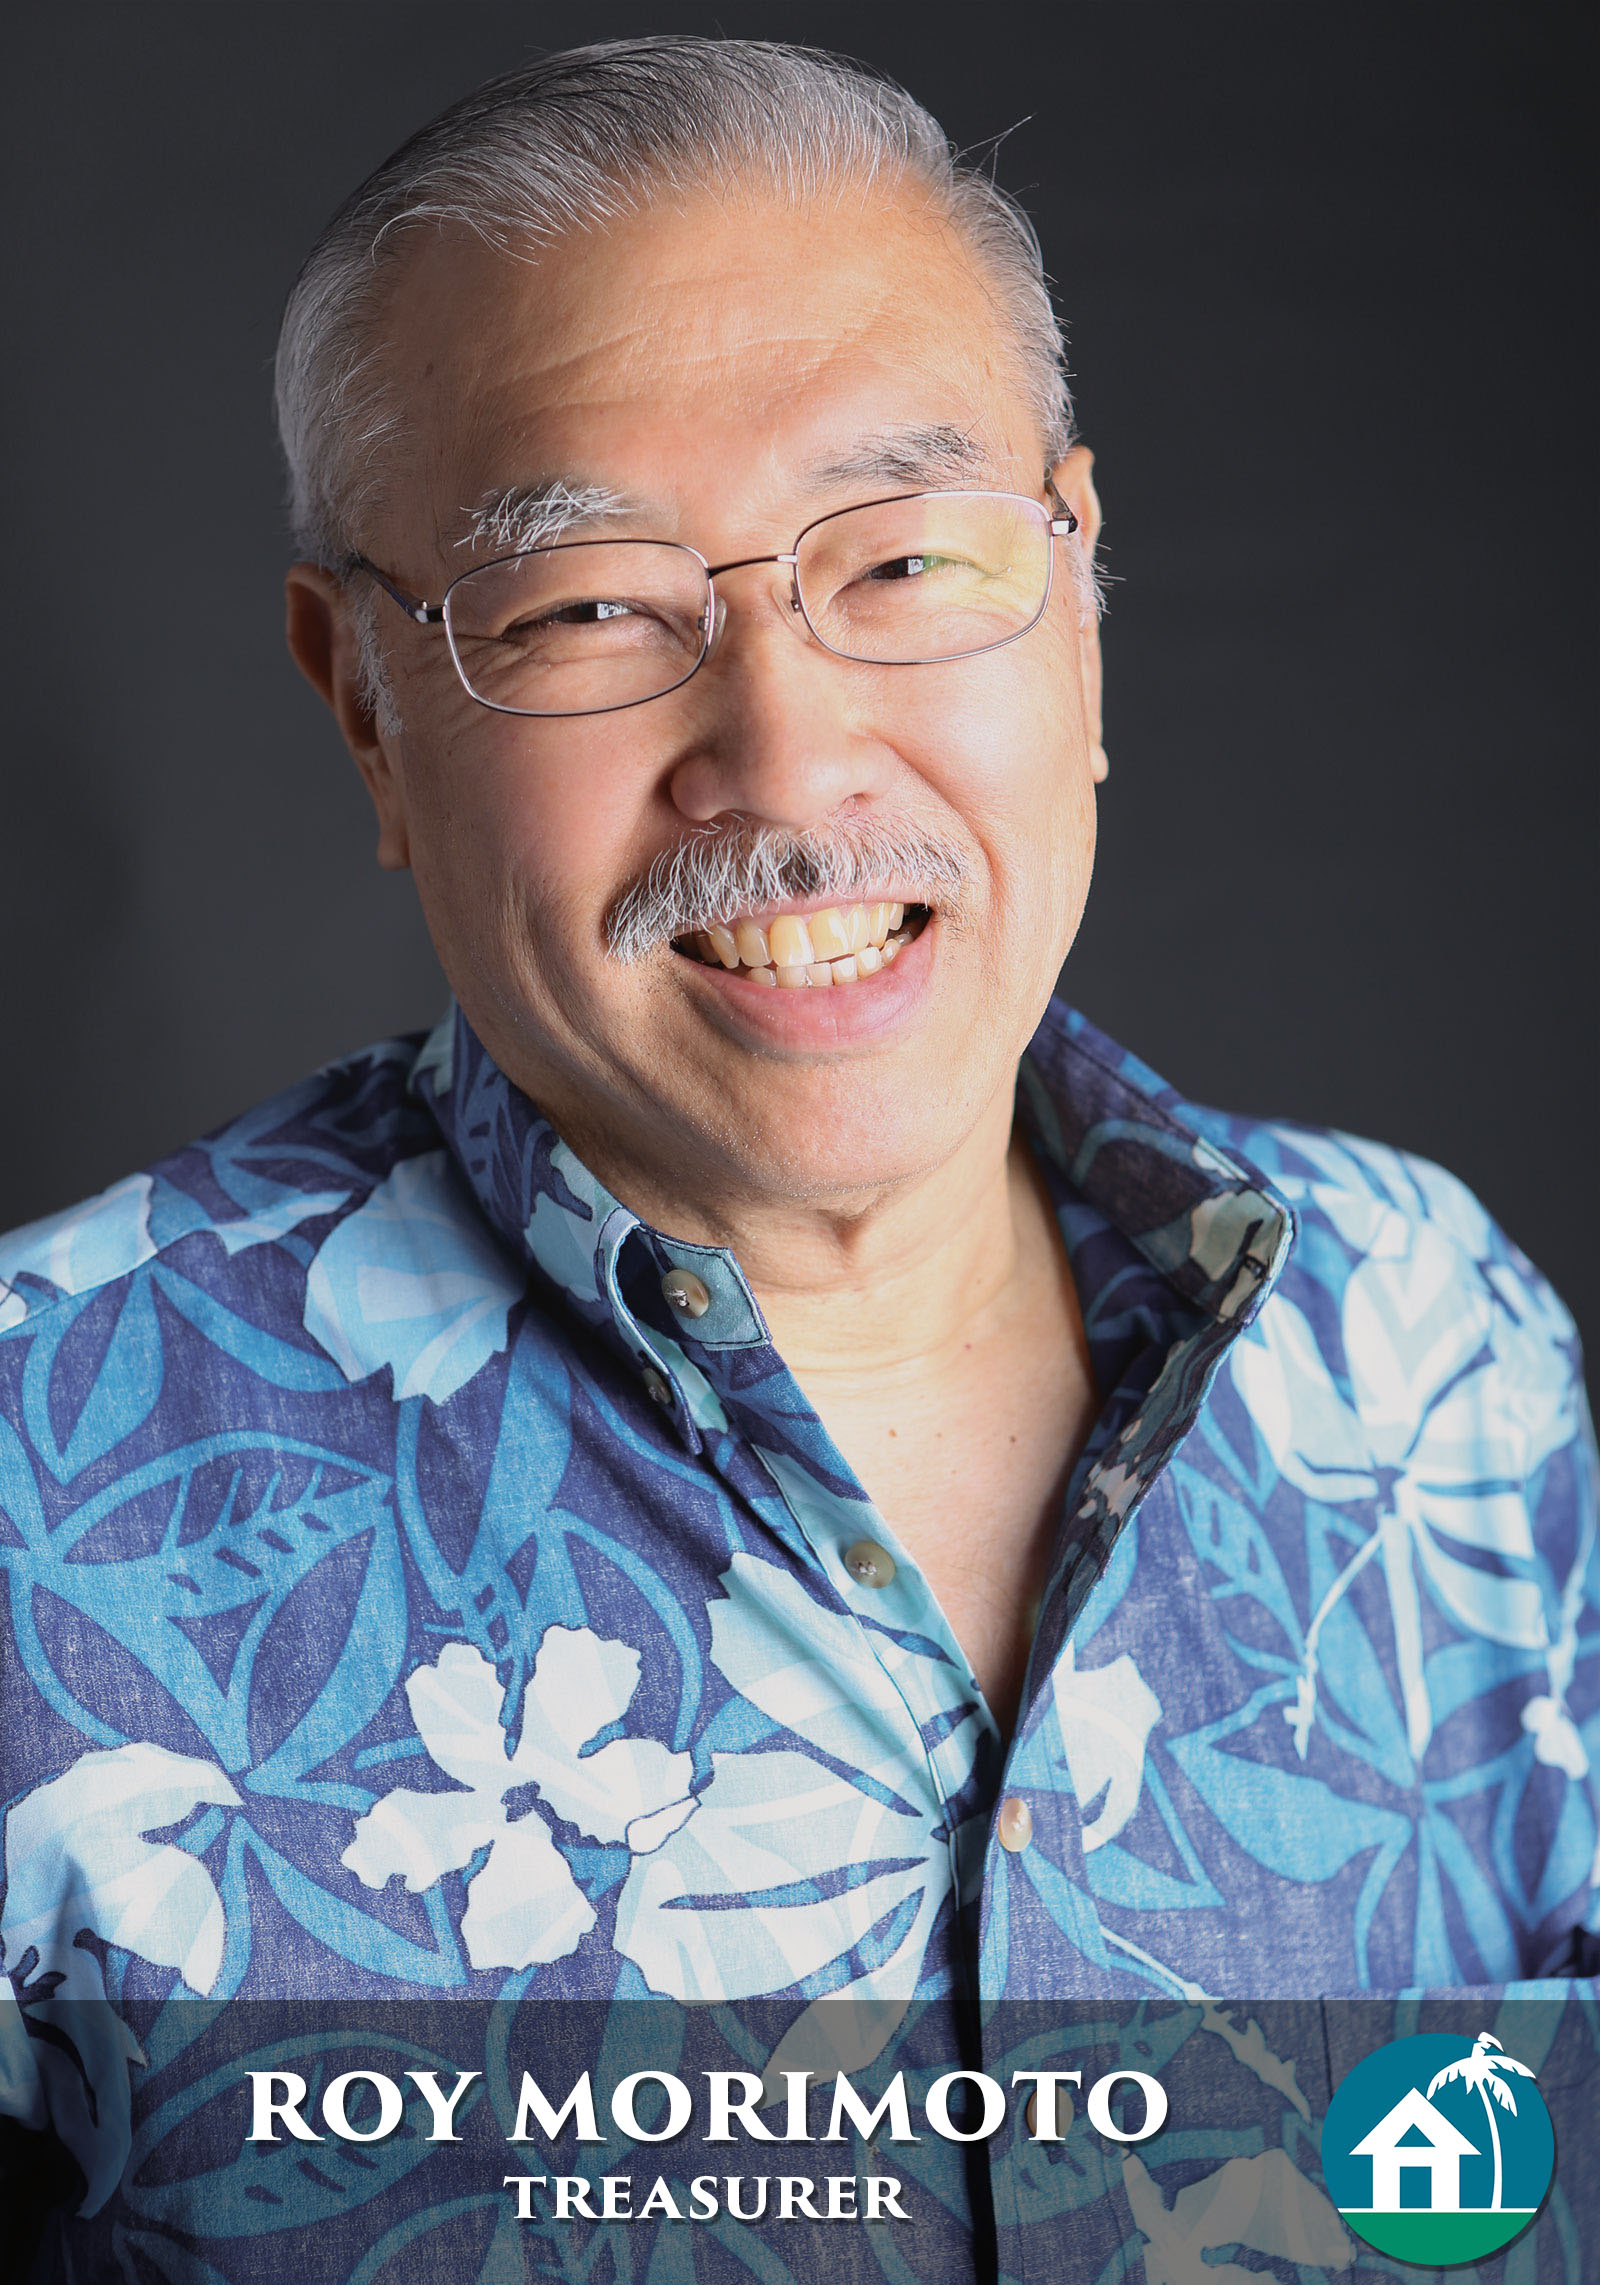 Board of Director, Roy Morimoto and Treasurer, on behalf of Hawaii Information Service